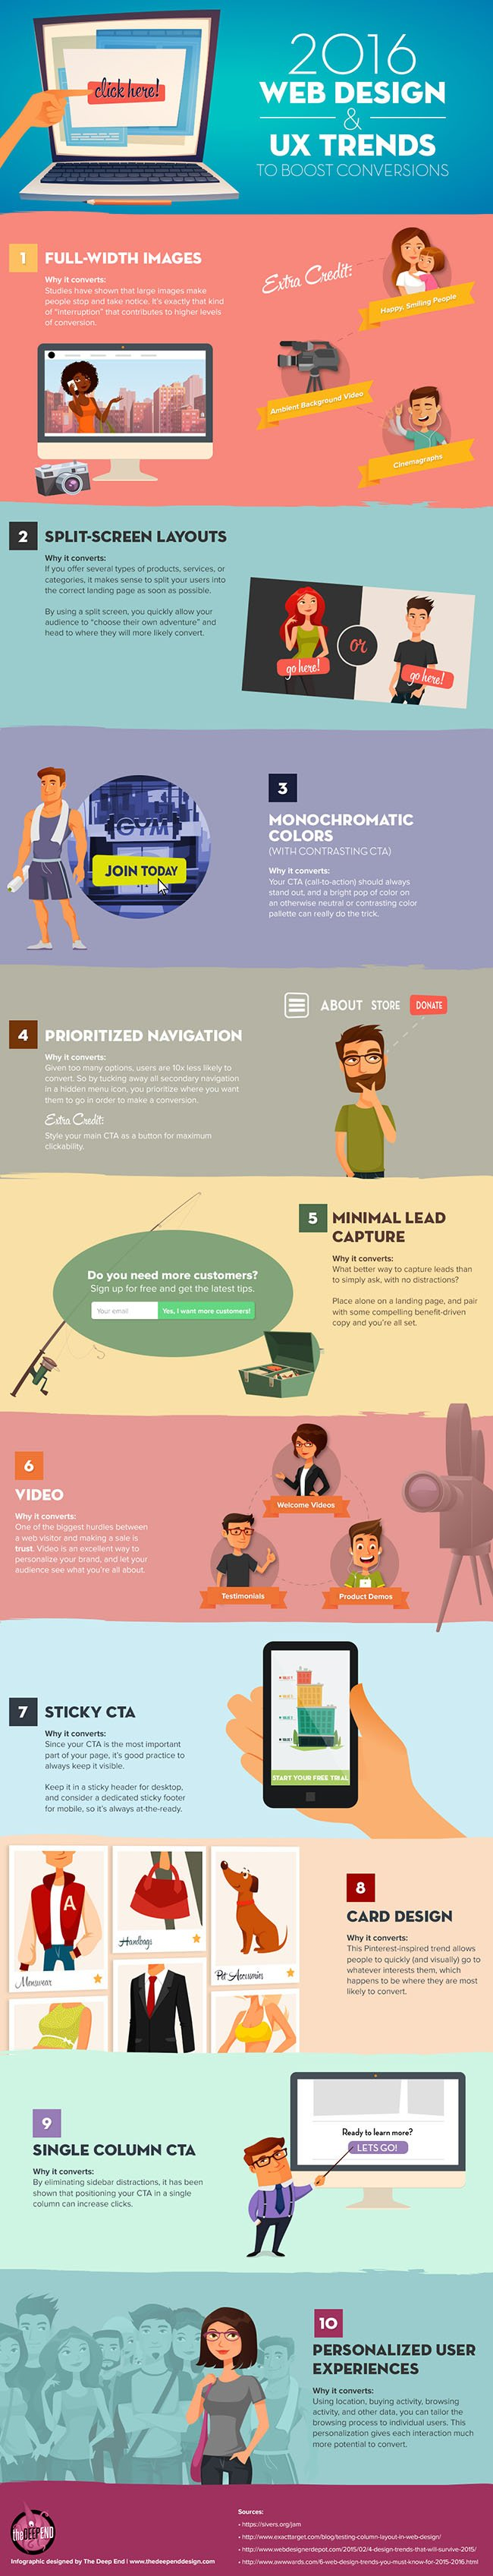 landing page trends infographic.jpg